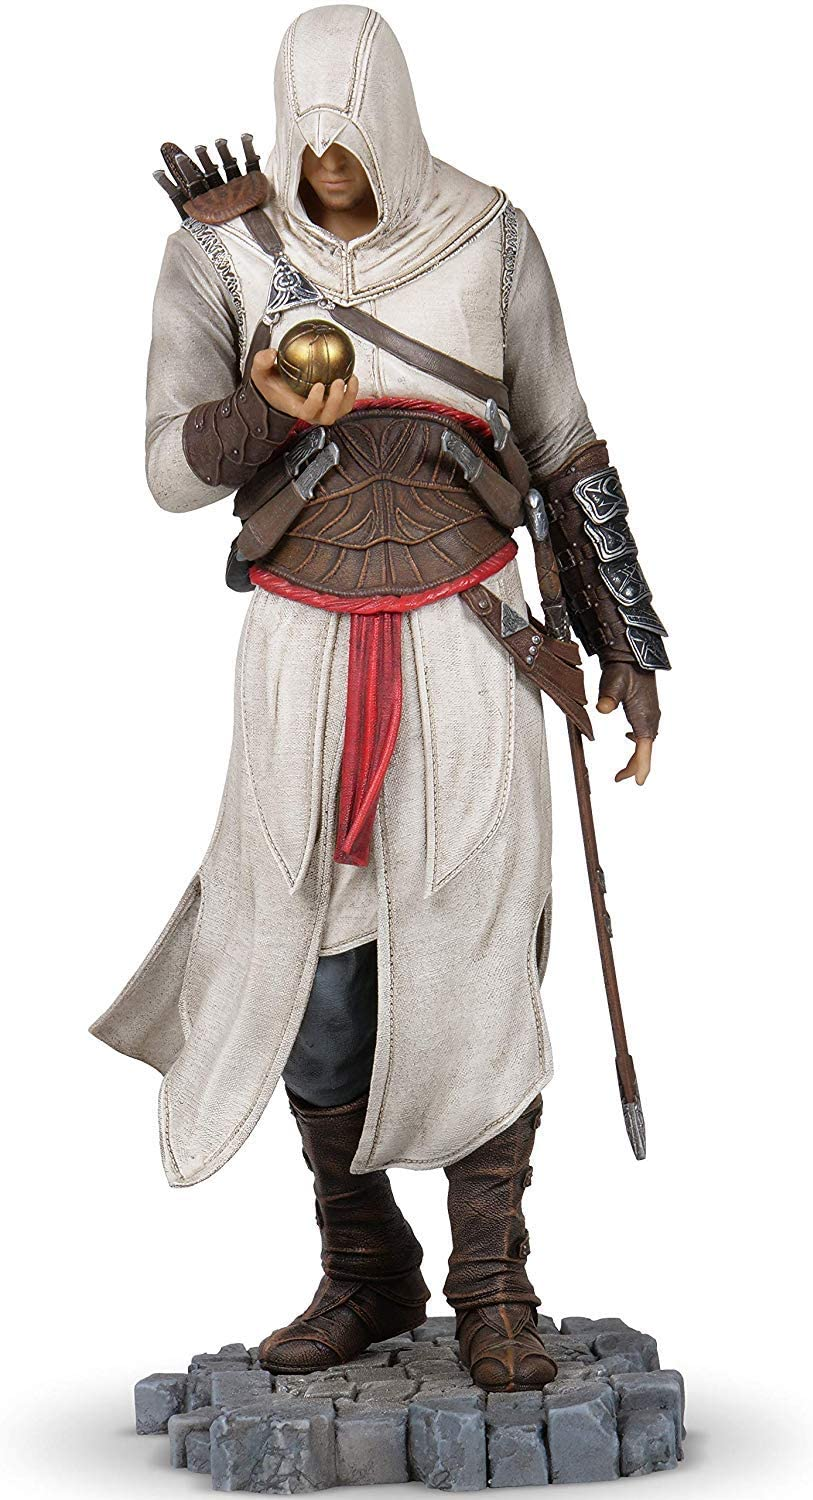 Altair Figurine : Apple of Eden Keeper - Assassin's Creed